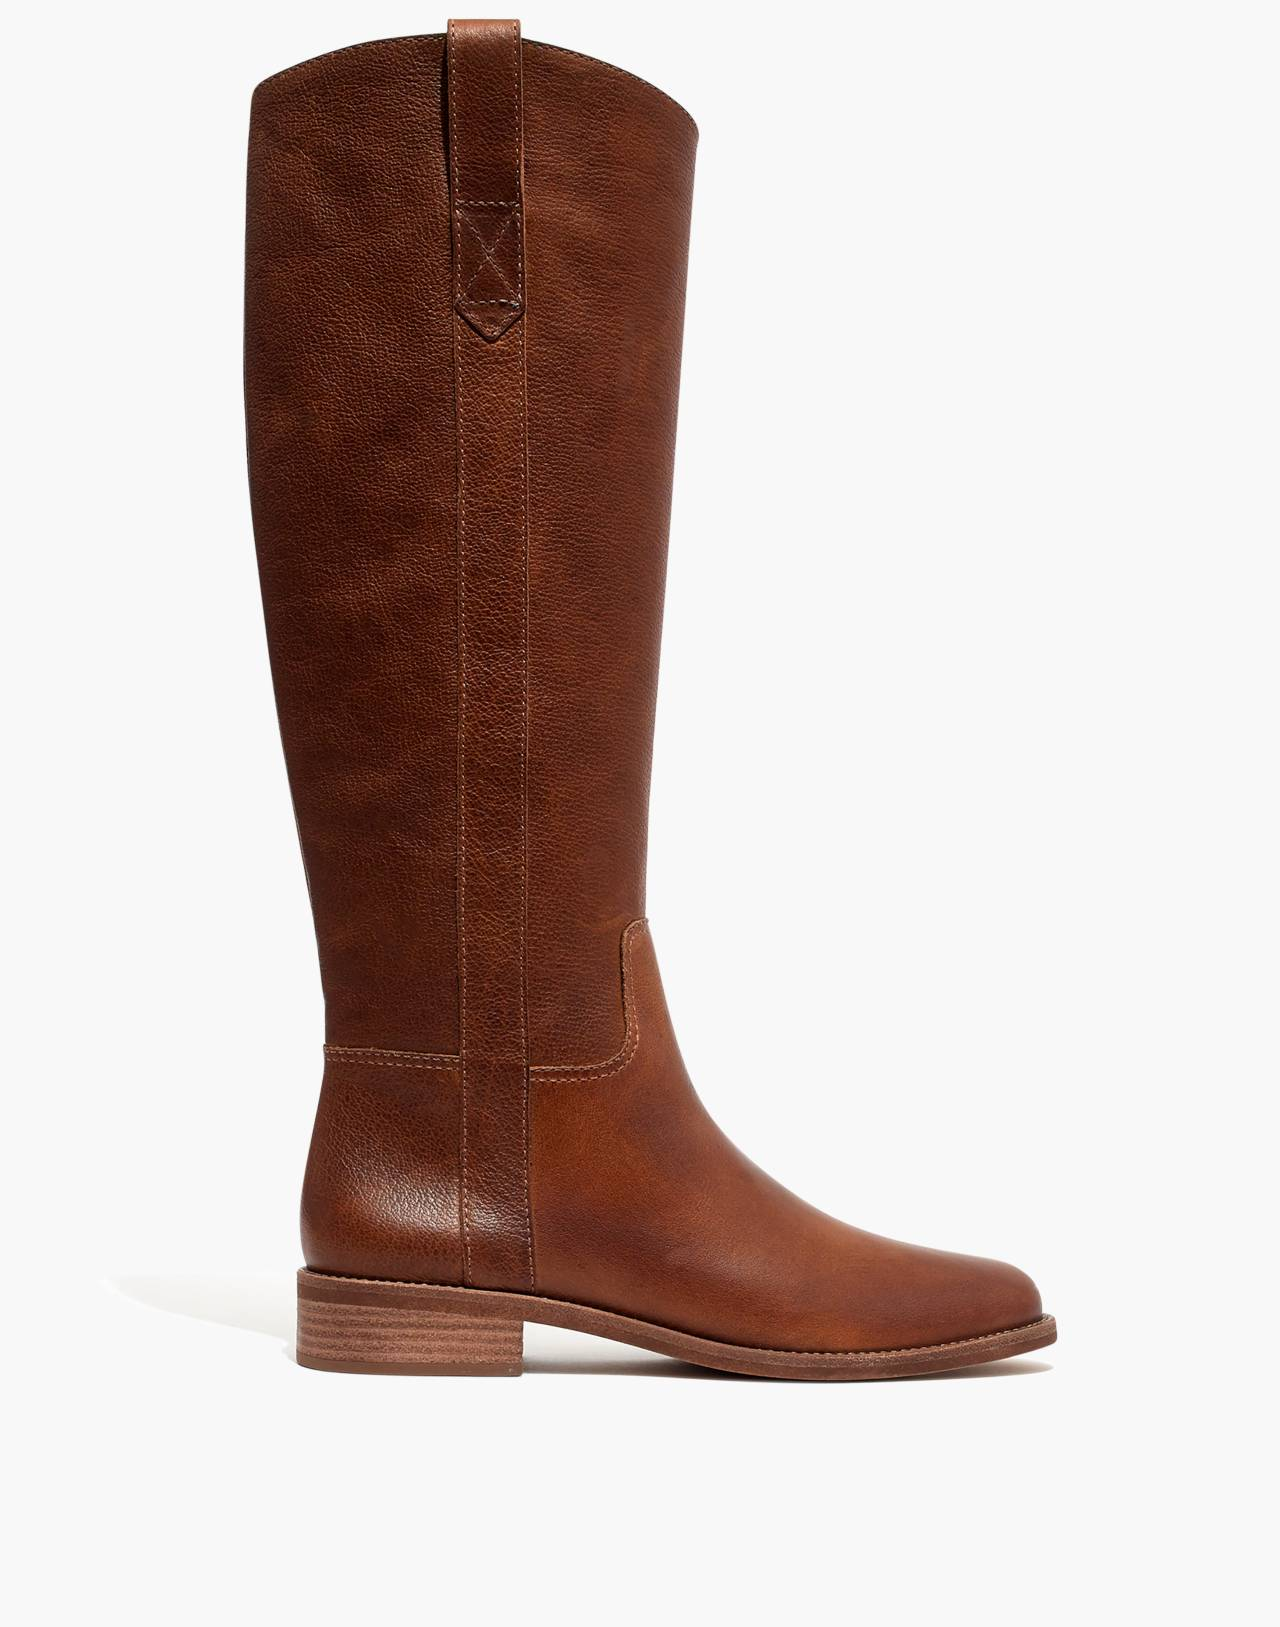 The Winslow Knee-High Boot with Extended Calf in english saddle image 2